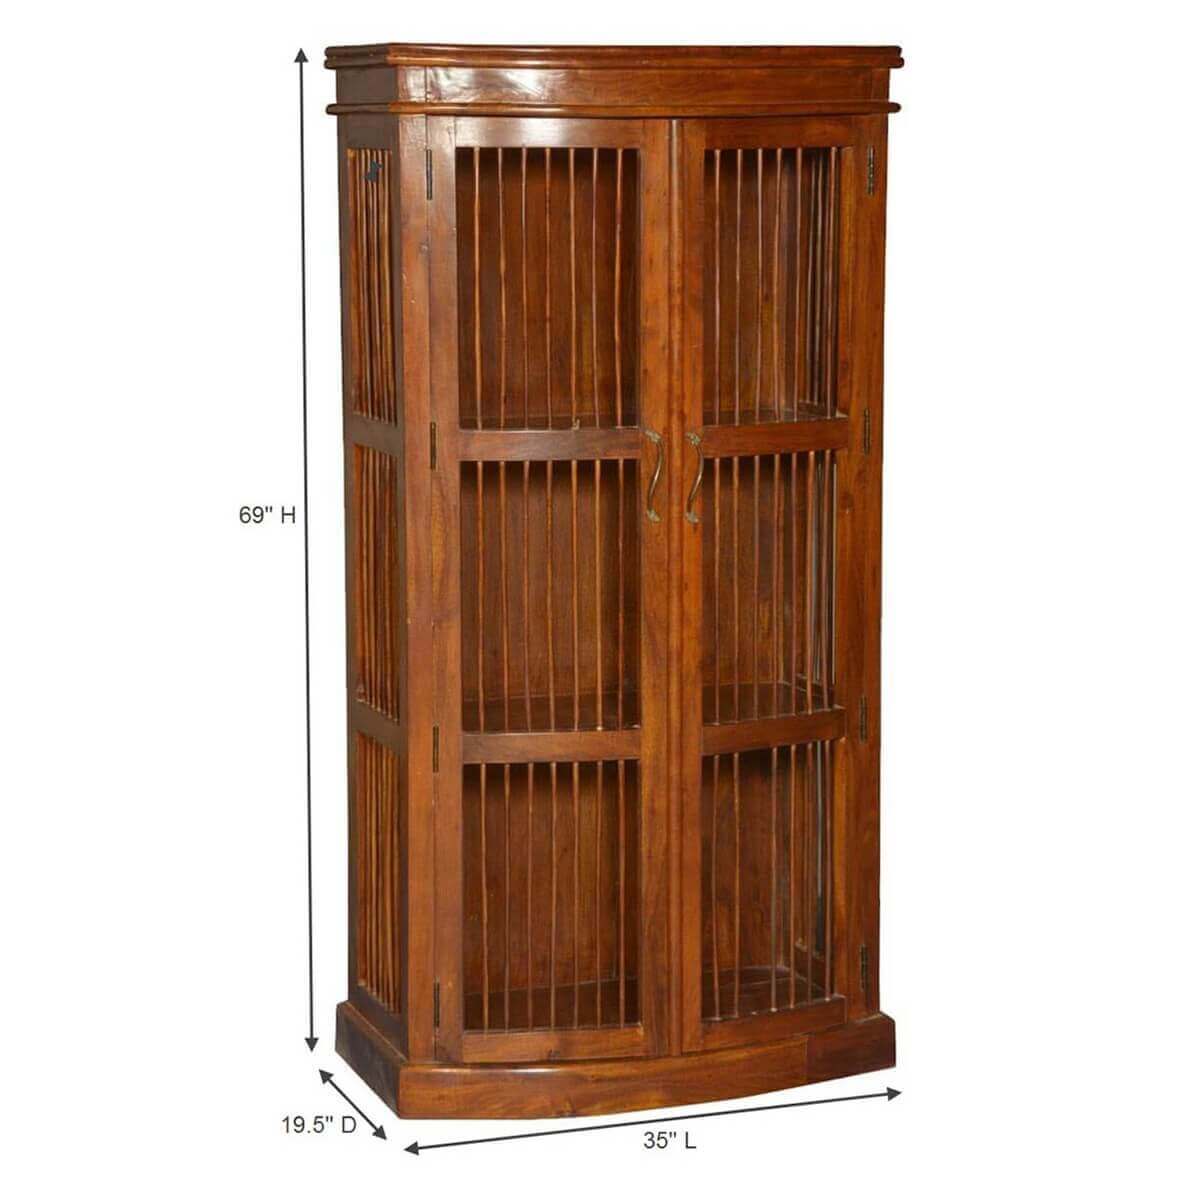 Wild west acacia wood wooden bars curio display cabinet for Acacia wood kitchen cabinets